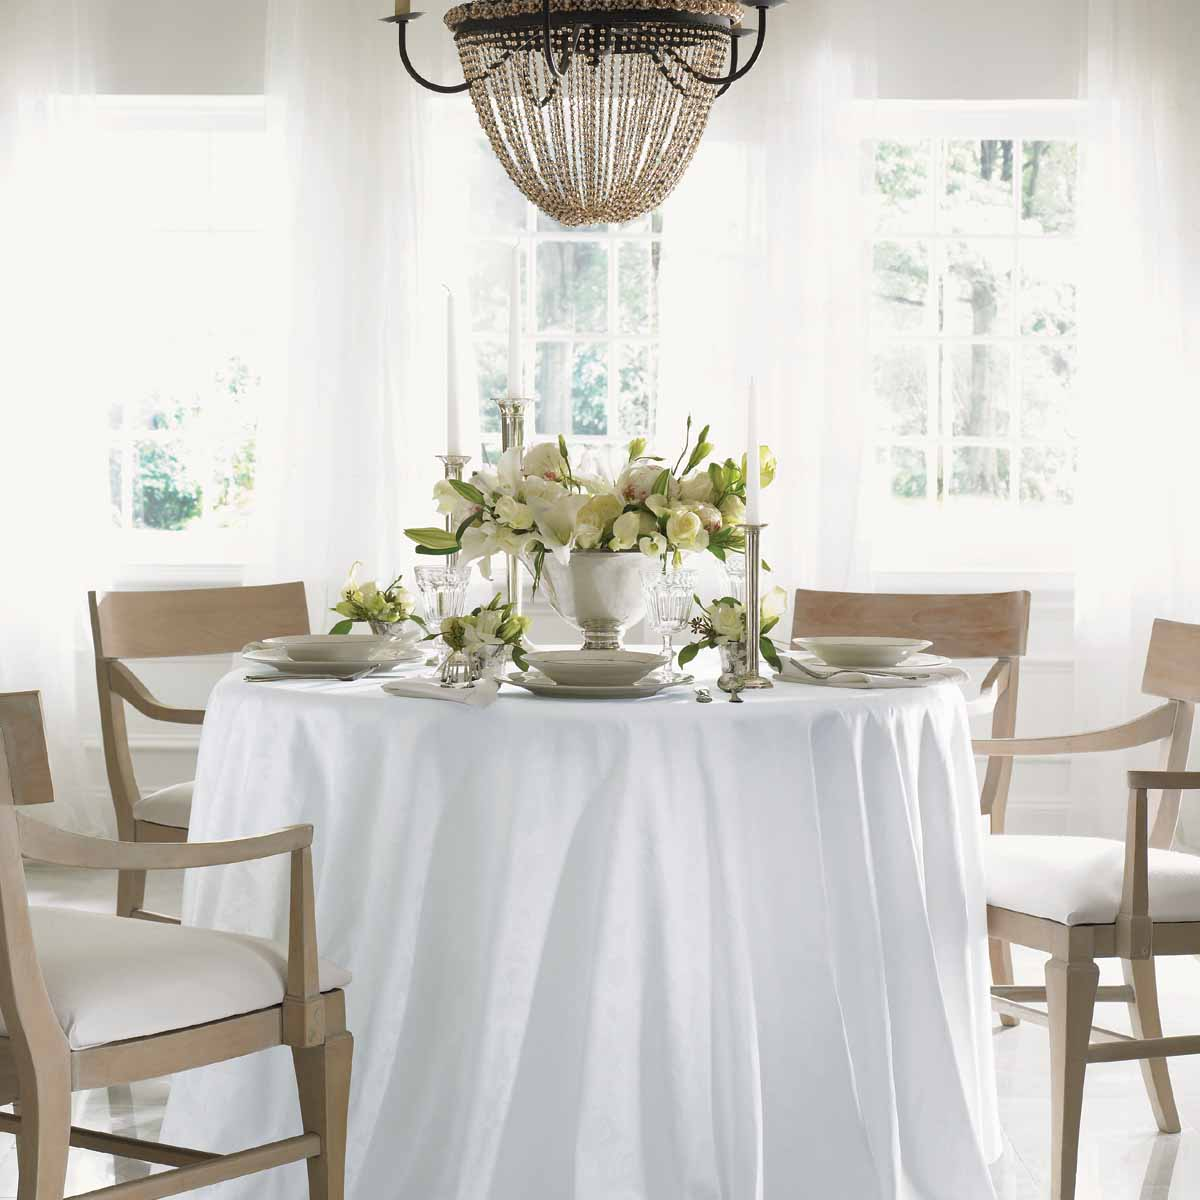 tablecloths fine linen cotton damask embroidered acanthus artistic accents tablecloth gracious style wooden table trestles door cabinet luxury dining room furniture target corner